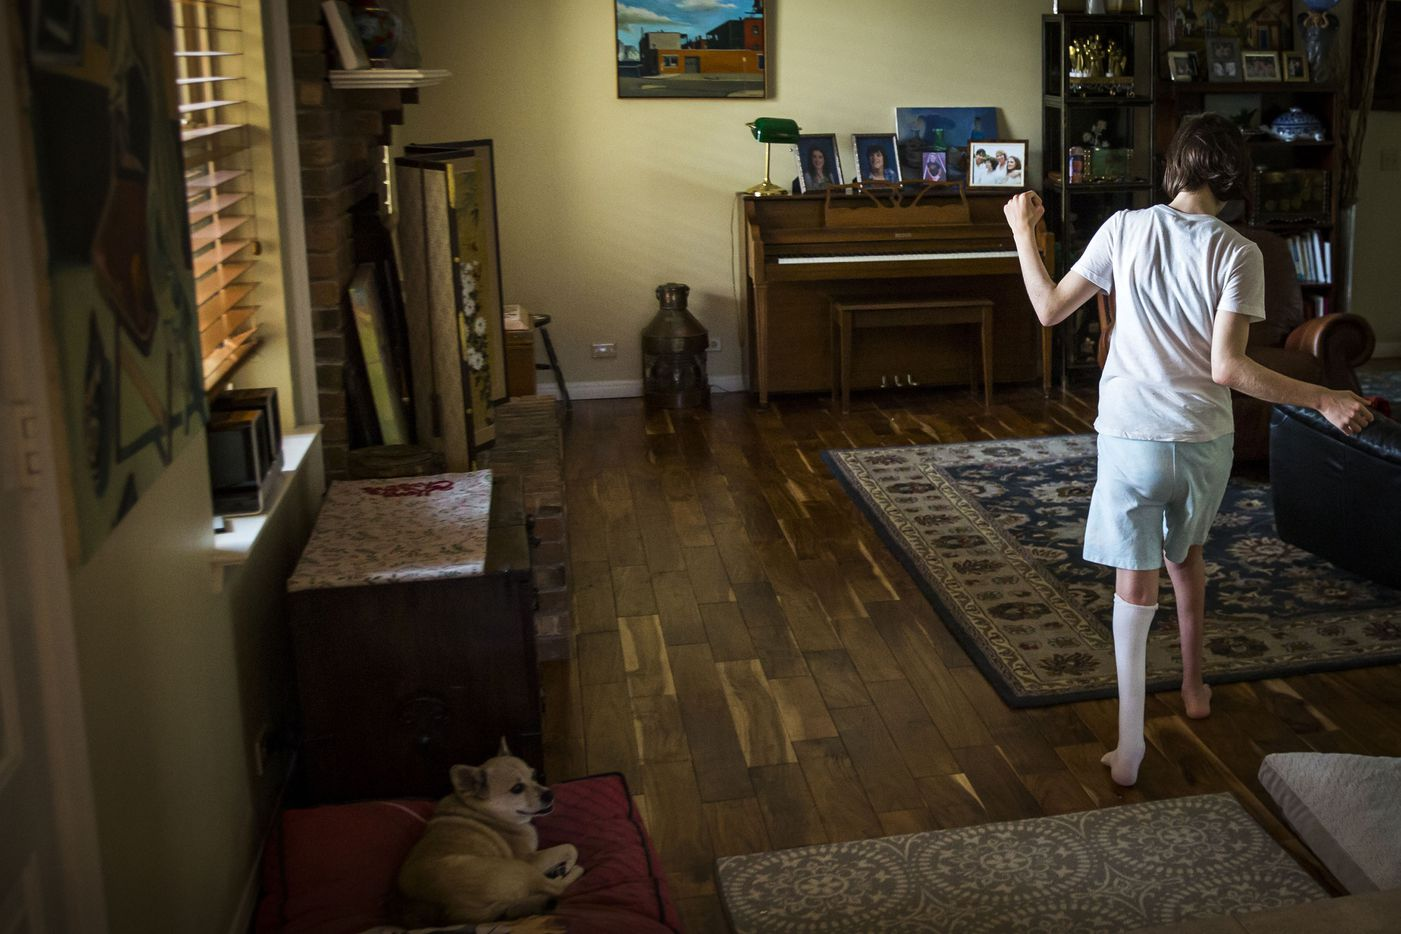 After spending the earlier part of the day agitated and having fits of self-abuse, Kara Zartler dances through her family's home after being treated with cannibis to control her outbursts on Saturday, March 18, 2017, in Richardson. Her family says the only way they can keep Kara from stop striking herself in the head is by giving her marijuana. (Smiley N. Pool/The Dallas Morning News)